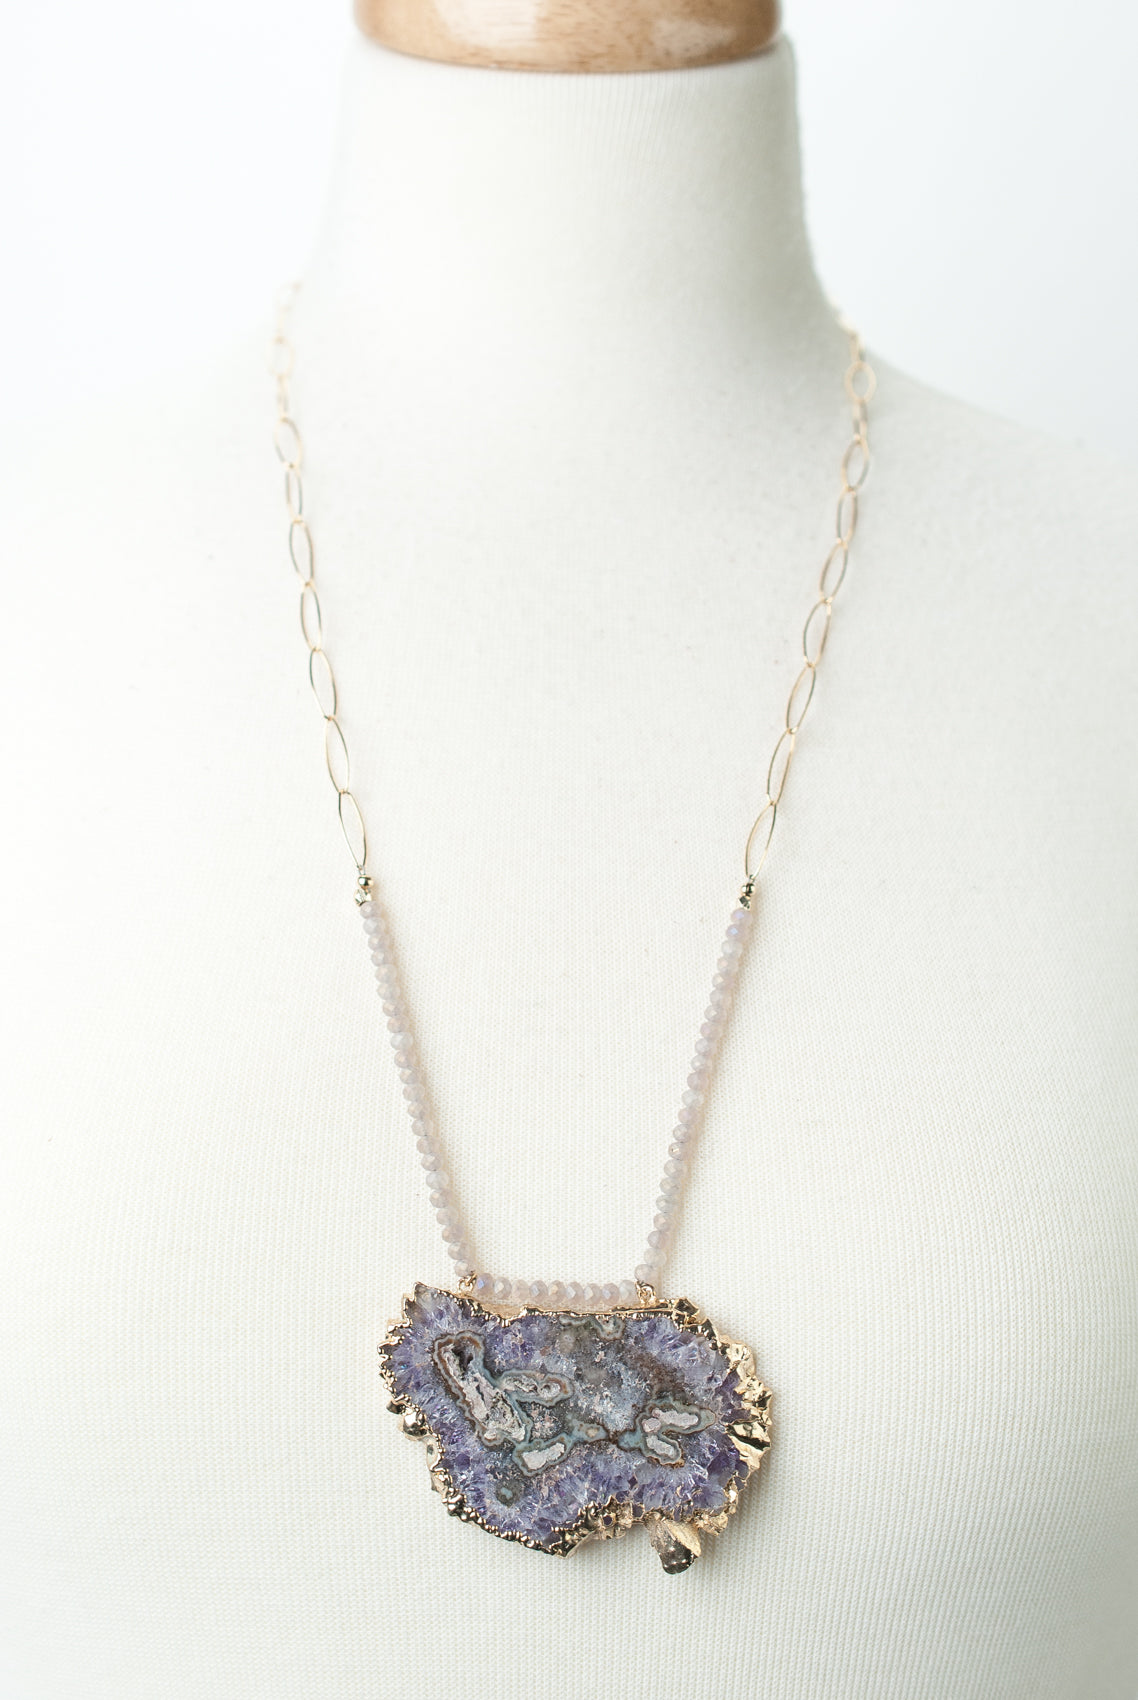 "*One of a Kind 28.5-30.5"" Stalactite Slice Focal Necklace"